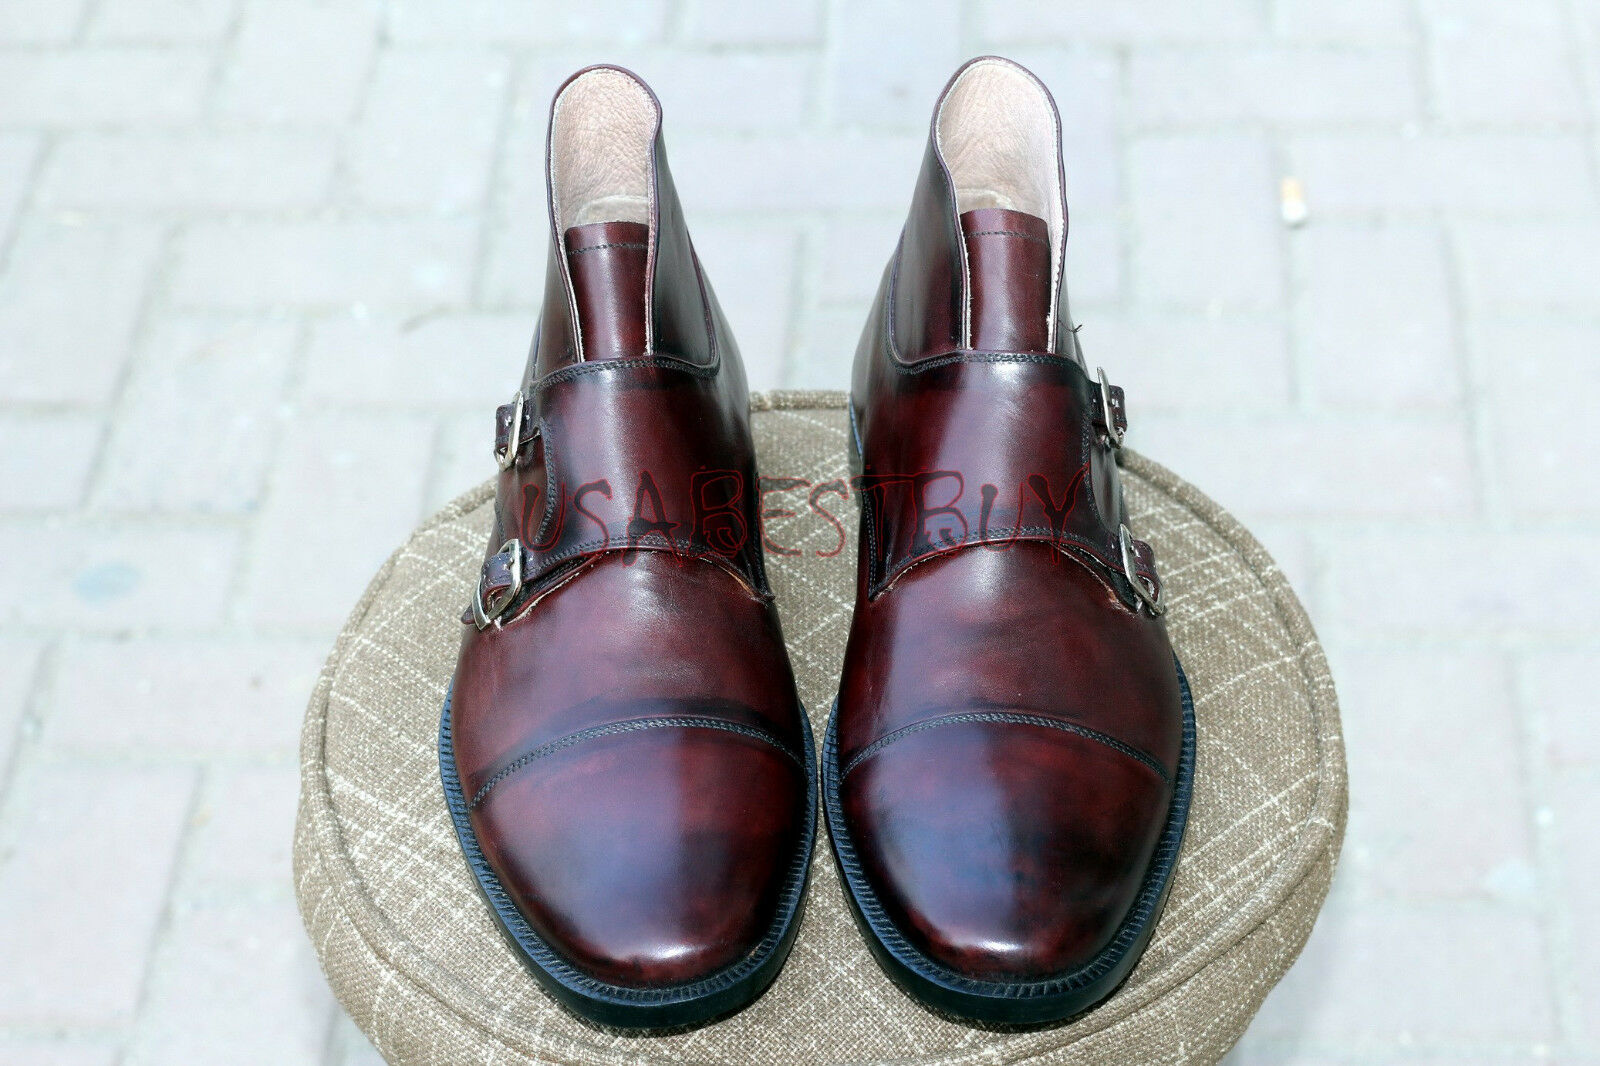 New Handmade Uomo Brown Monk Strap Pure Pelle Stivali, leather Uomo Real leather Stivali, boots 9fa226